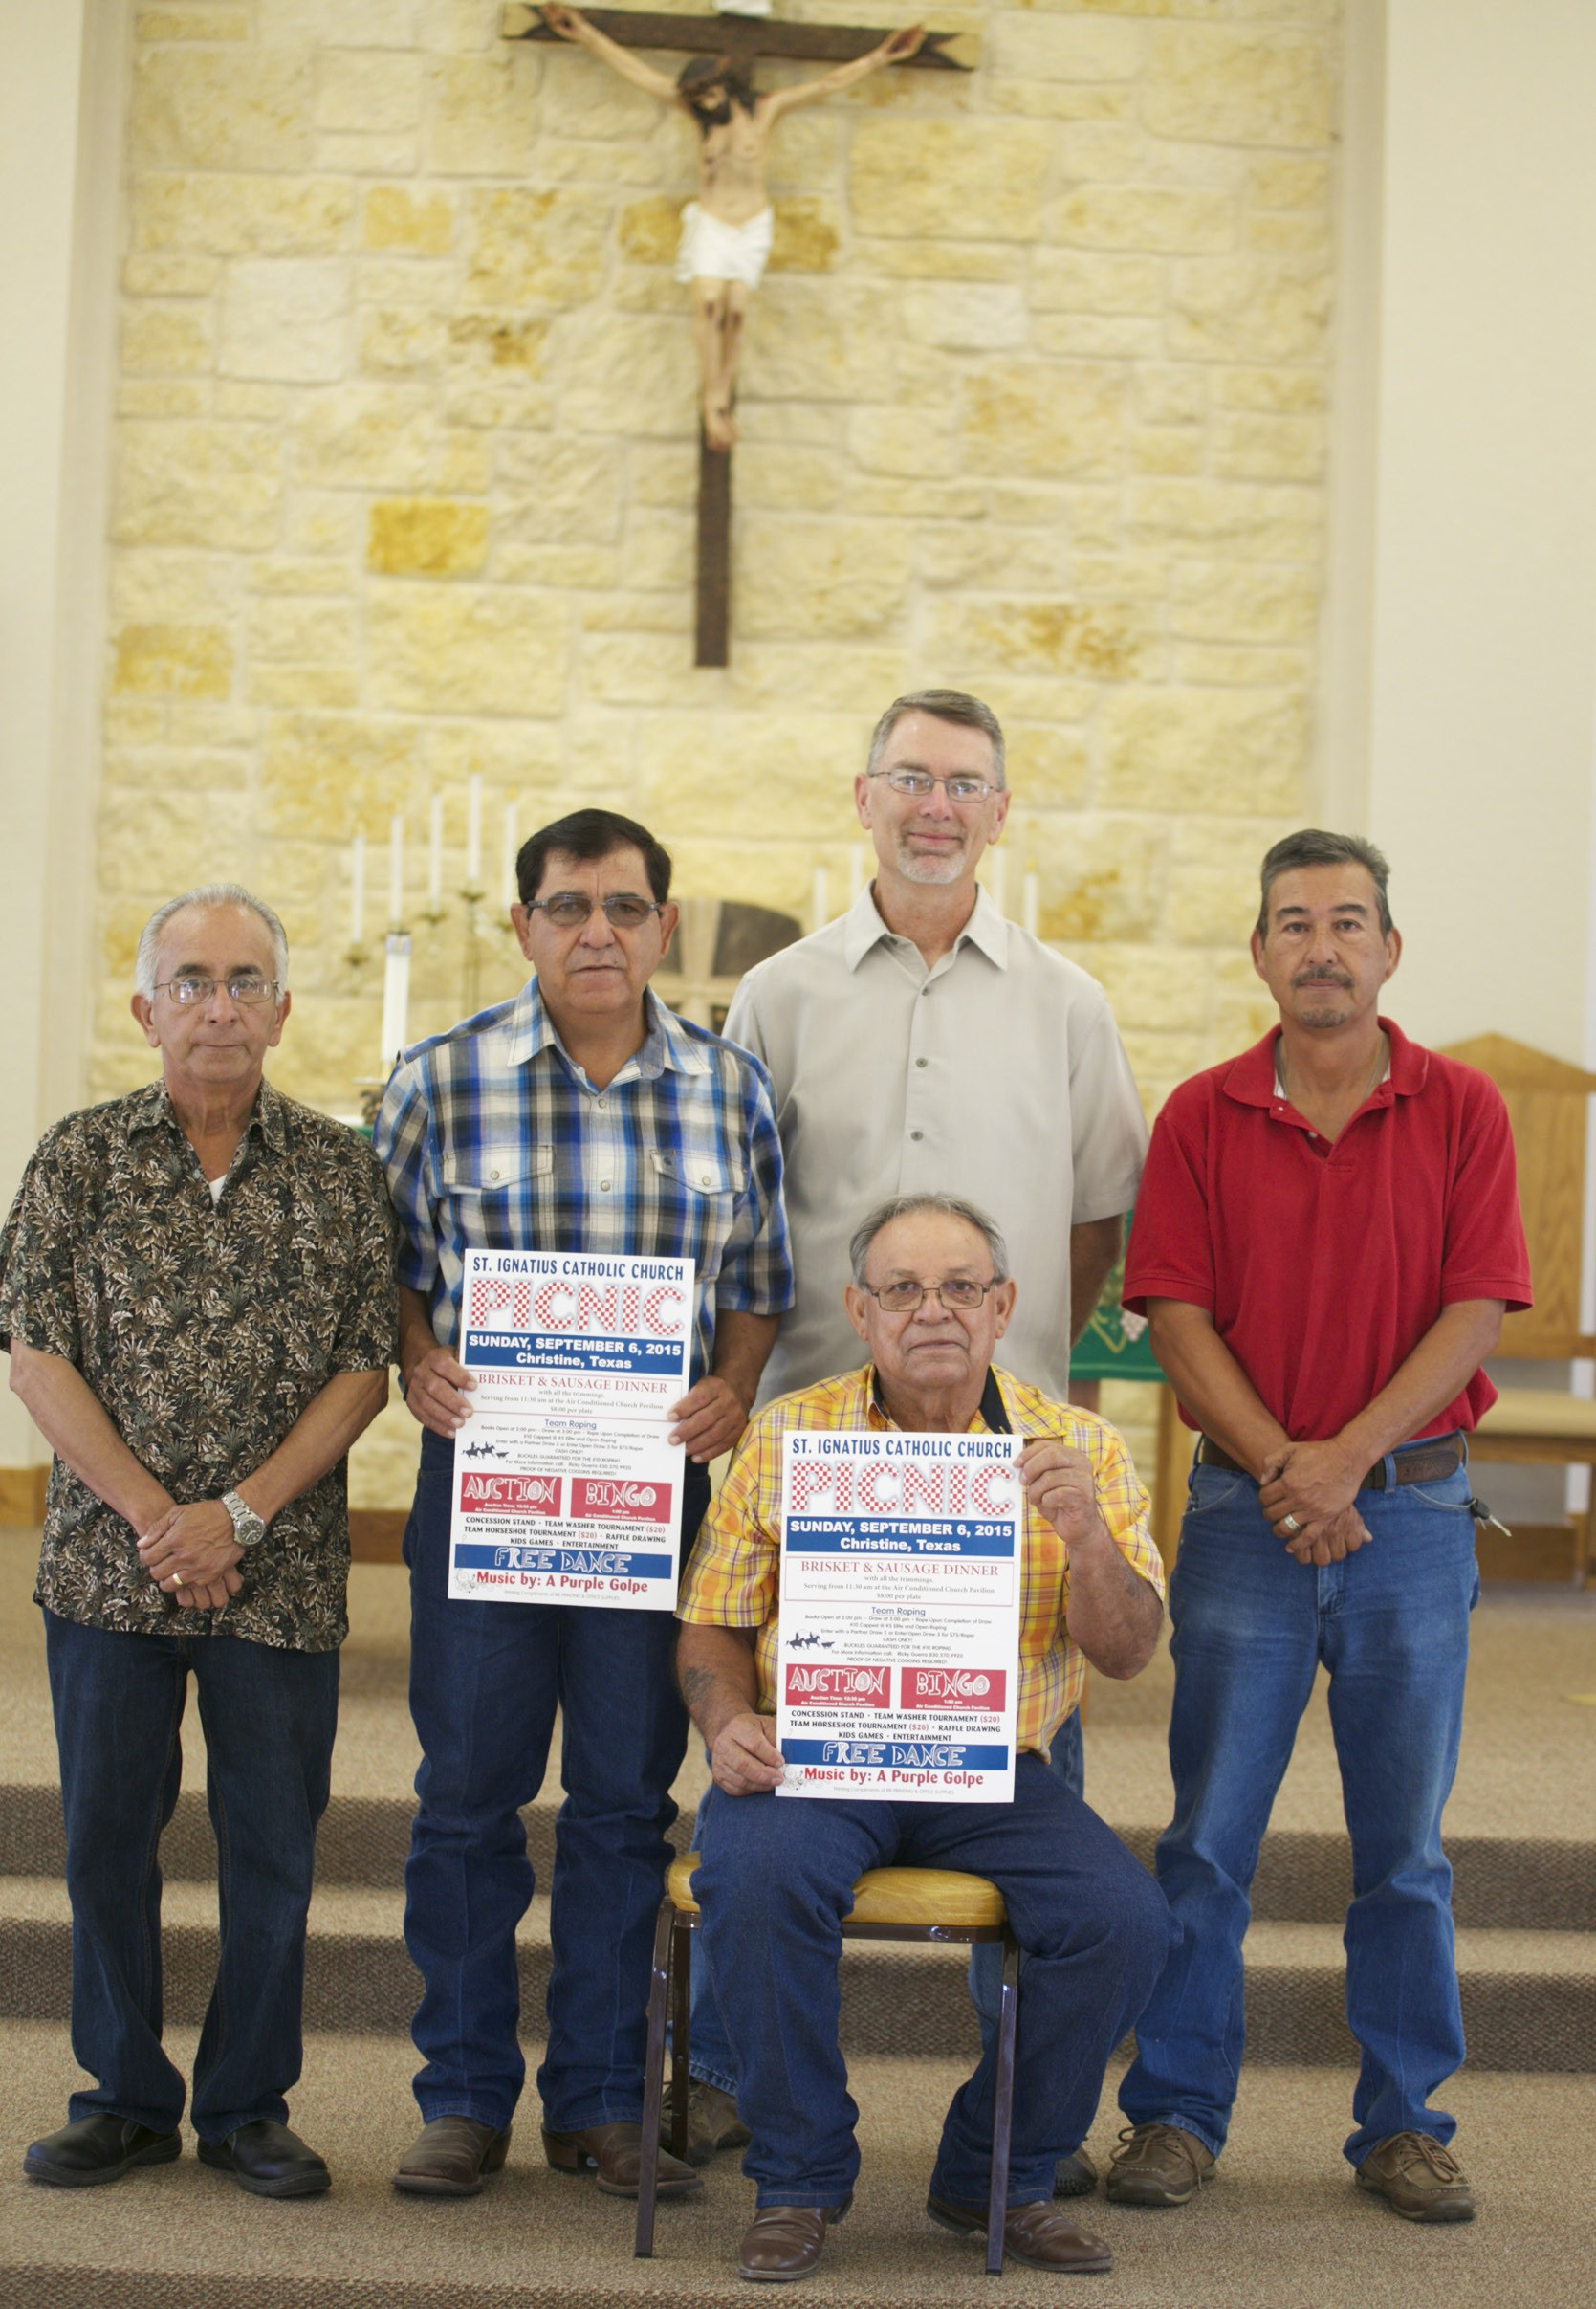 David Navejar, Robert Regalado, Chris Wilems, Richard Salas and Aurelio Bosquez (seated) invite you to join them at the St. Ignatius Catholic Church Annual Picnic. The picnic is this Sunday, September 6, 2015. Serving of meal will begin at 11:30 a.m. followed by a live auction, games for the whole family and a free dance with music provided by A Purple Golpe.